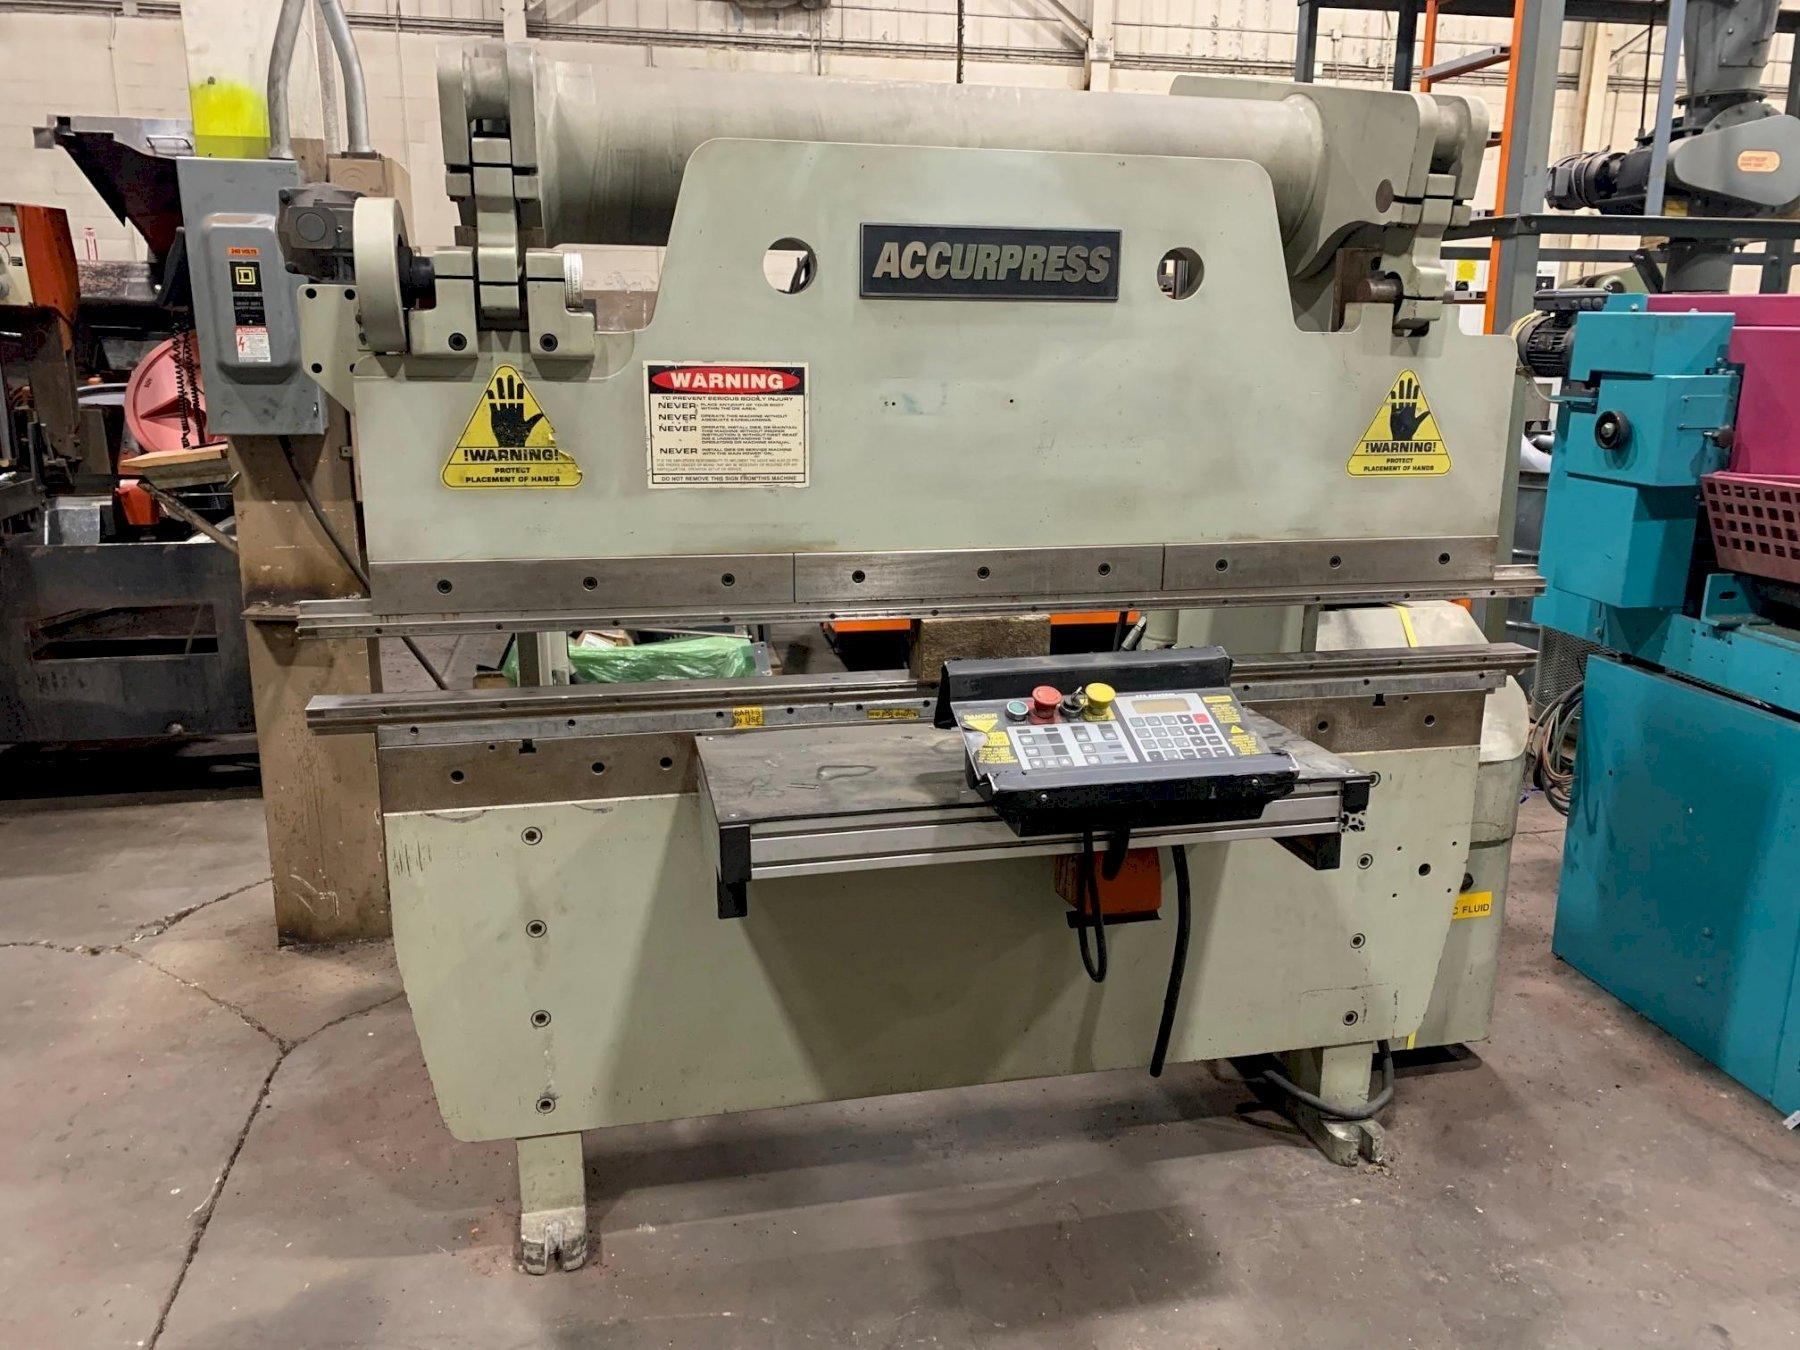 USED ACCURPRESS 60 TON X 6' HYDRAULIC PRESS BRAKE MODEL 7606, Stock #10802, Year 1998